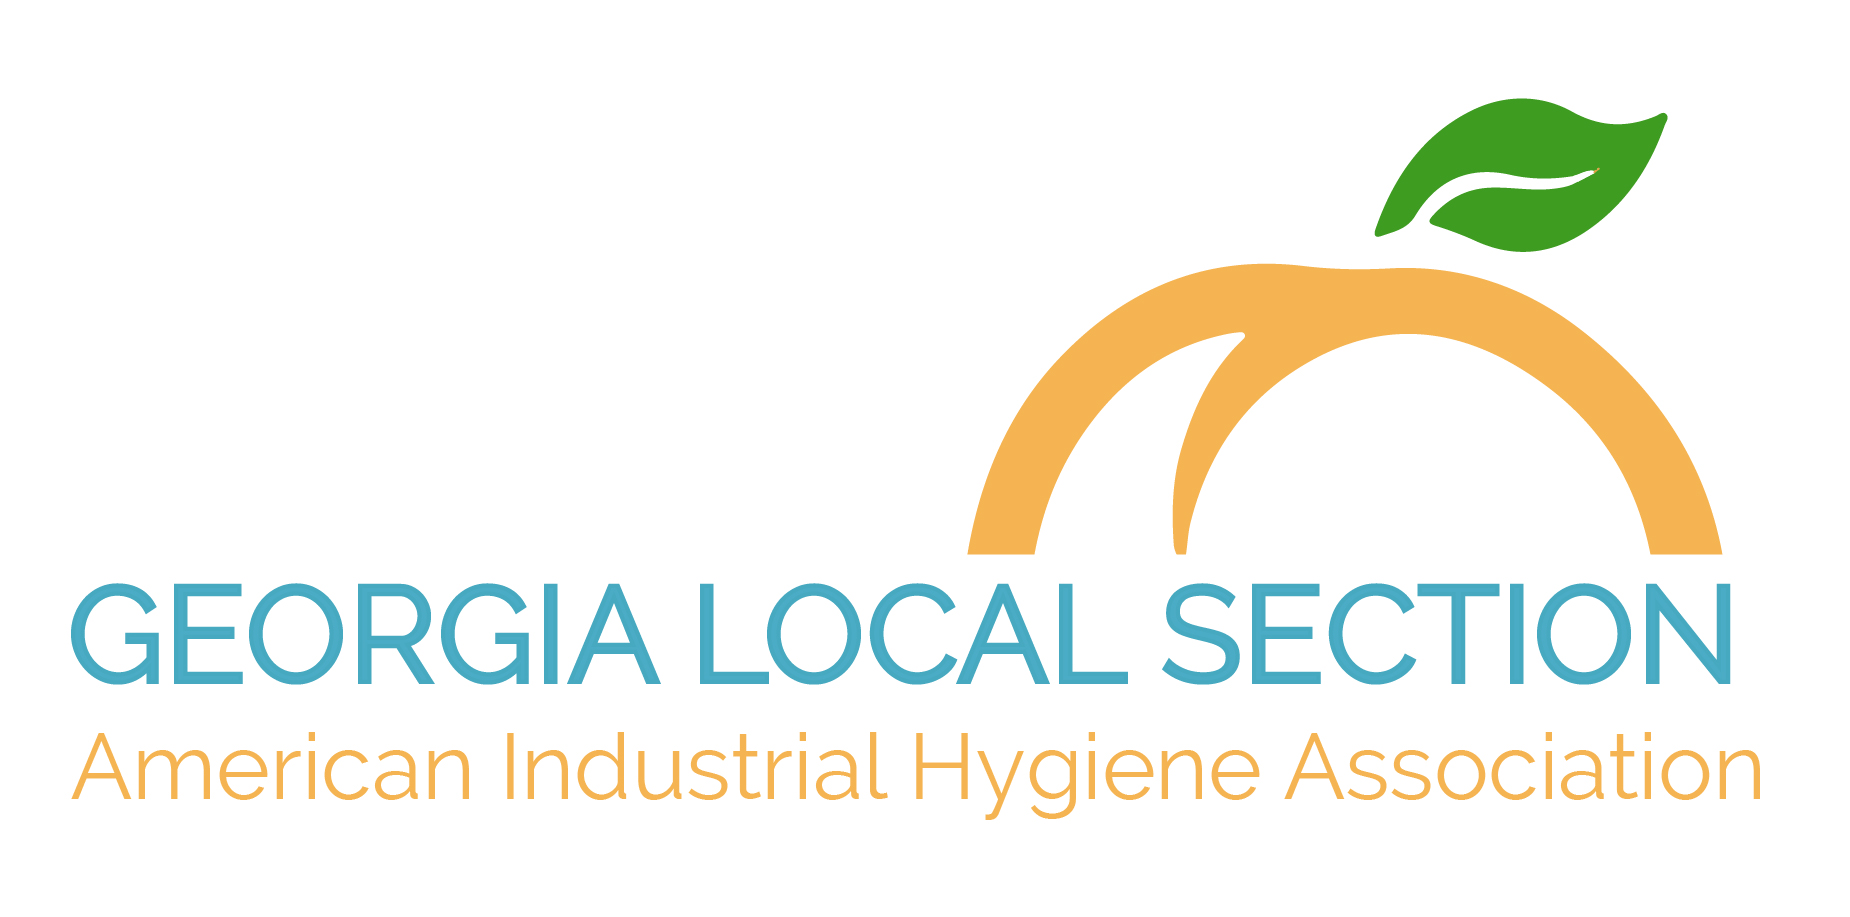 georgia local section aiha job postings - Certified Industrial Hygienist Resume